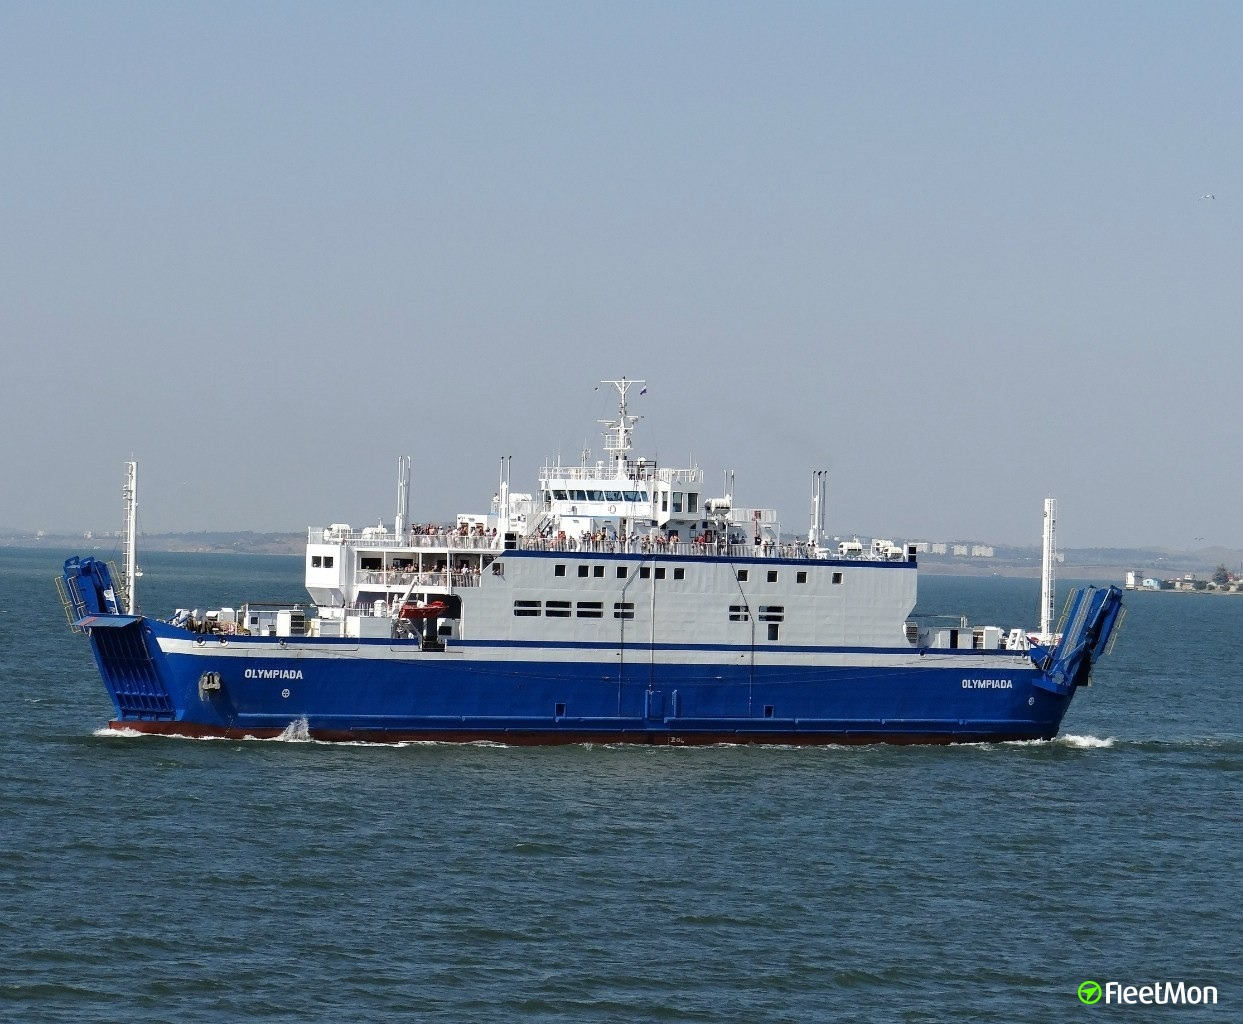 Ferry Olympiada dented in allision with lier, Kerch, Crimea